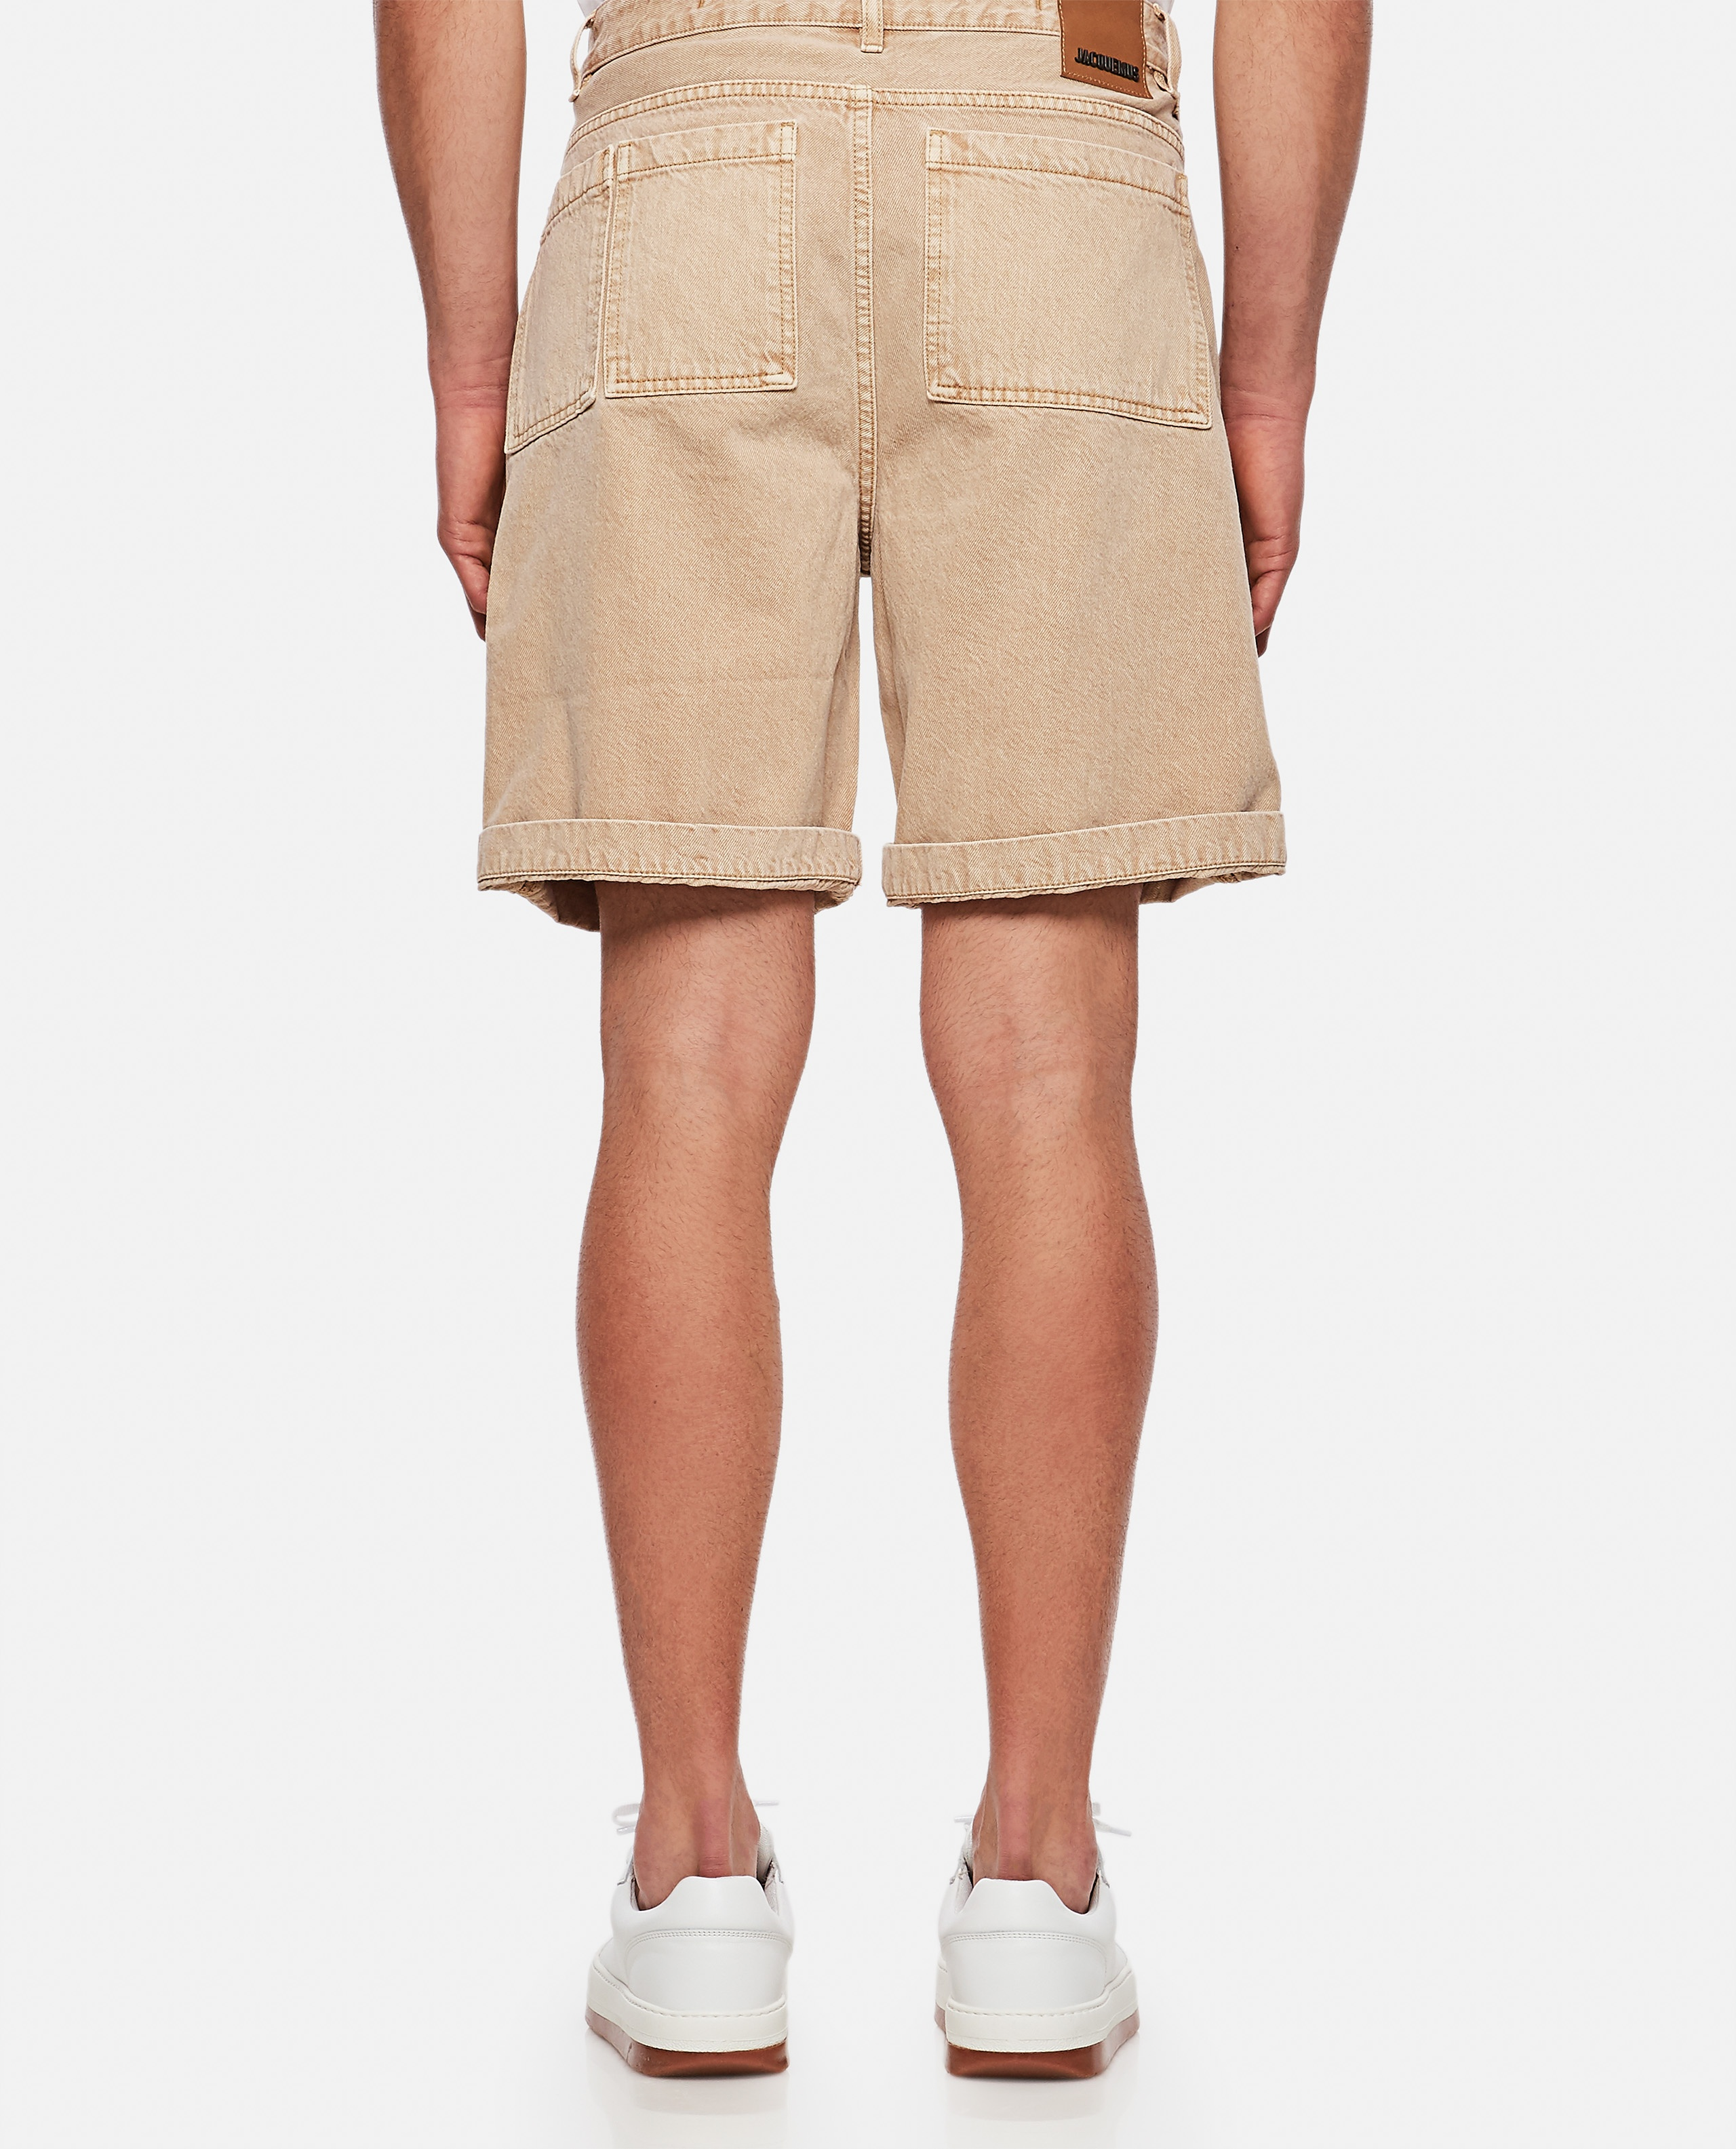 Le short de Nîmes Casual denim shorts Men Jacquemus 000293900043260 3